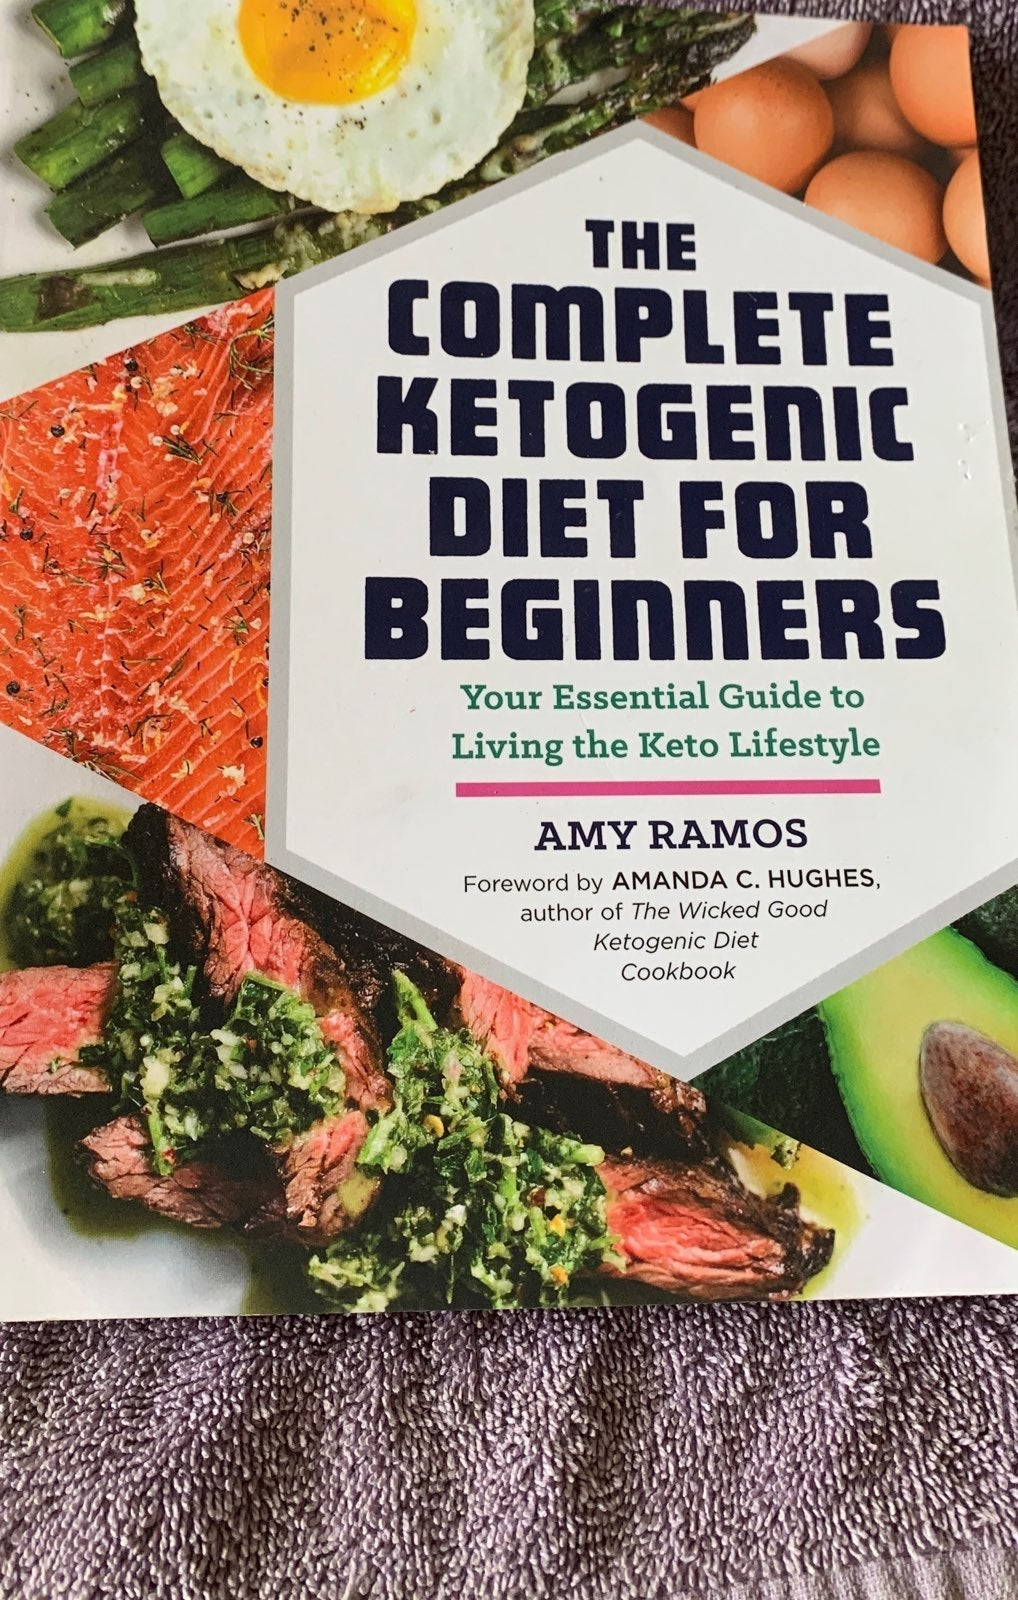 Complete Ketogenic Diet For